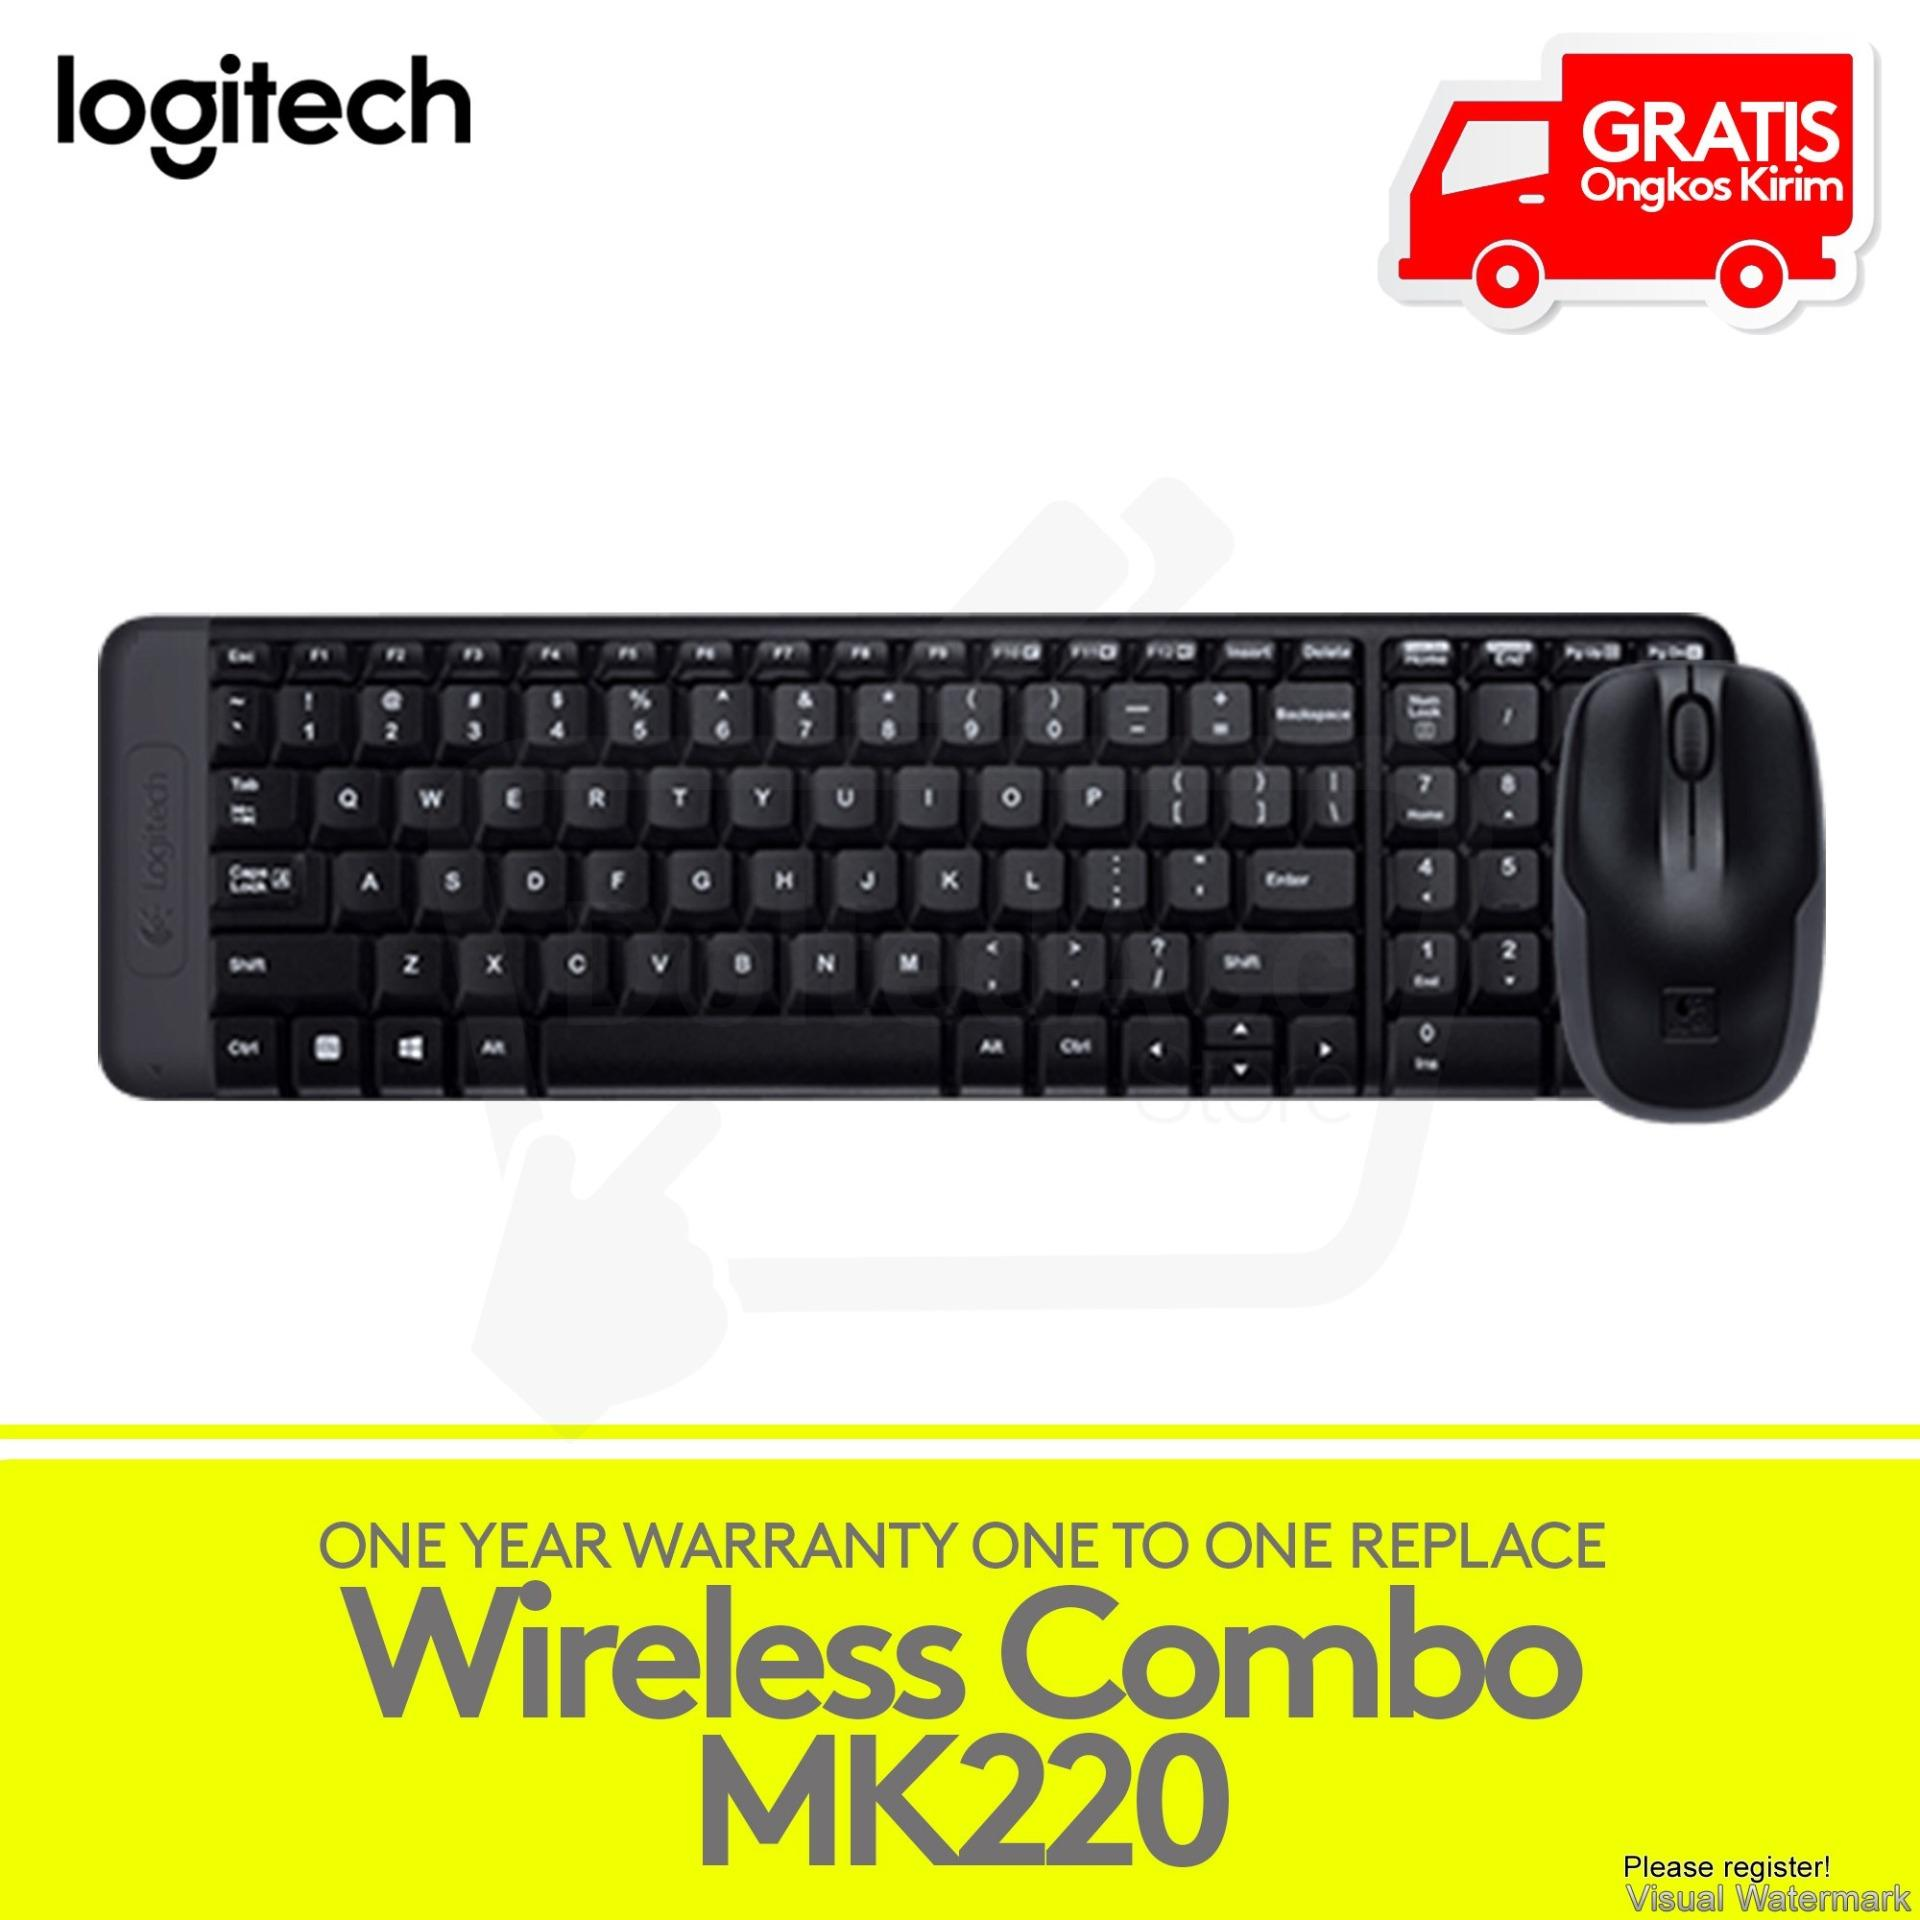 Logitech Wireless Keyboard Mouse Combo MK220 - Hitam